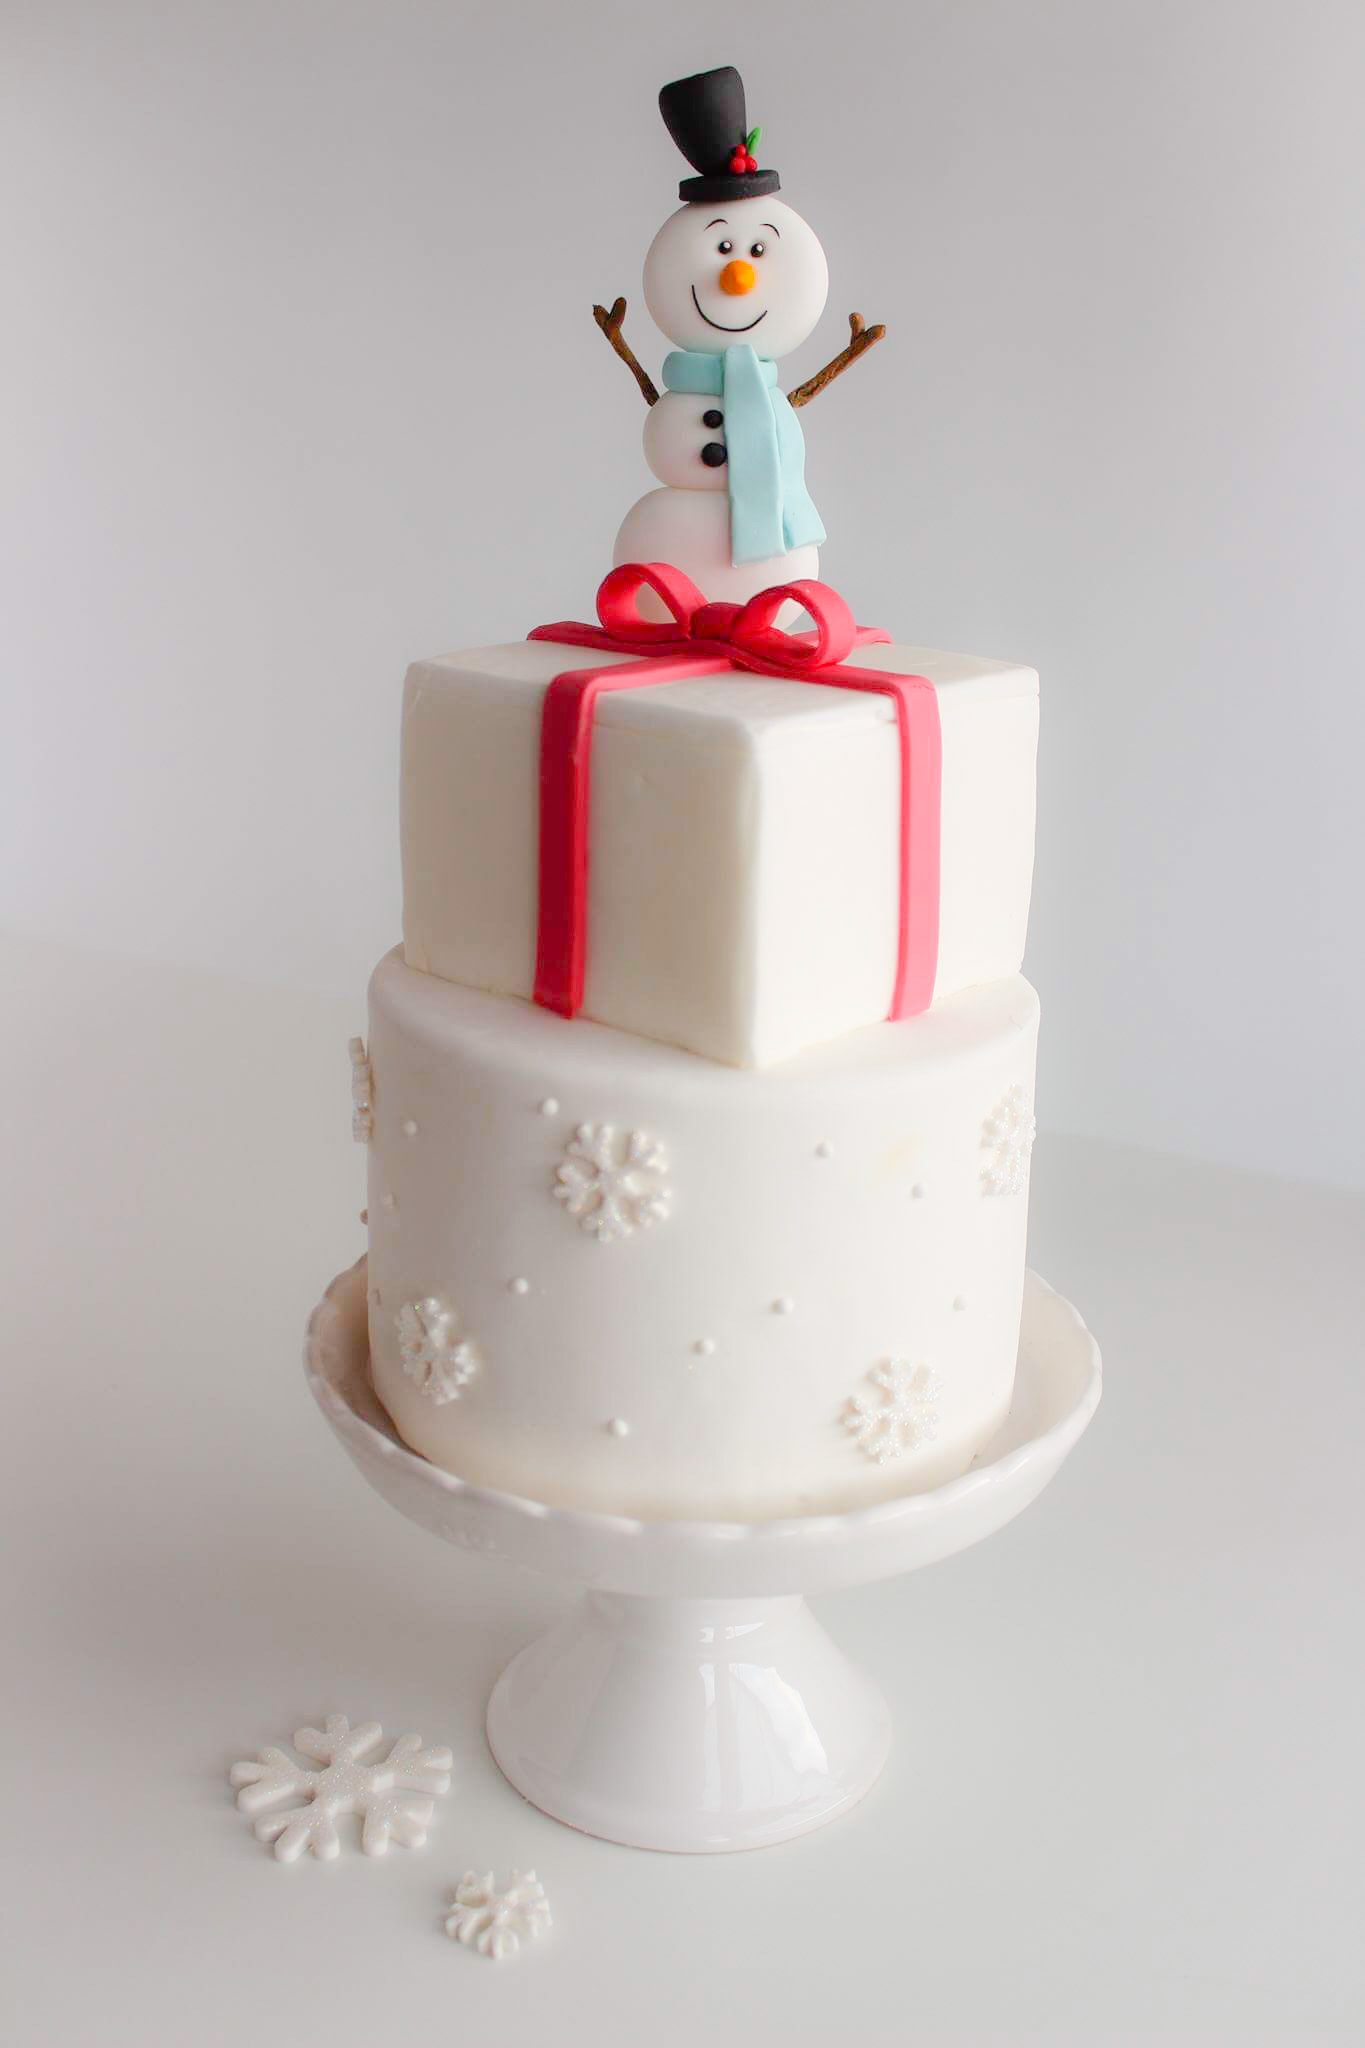 White fondant cake with snowman topper